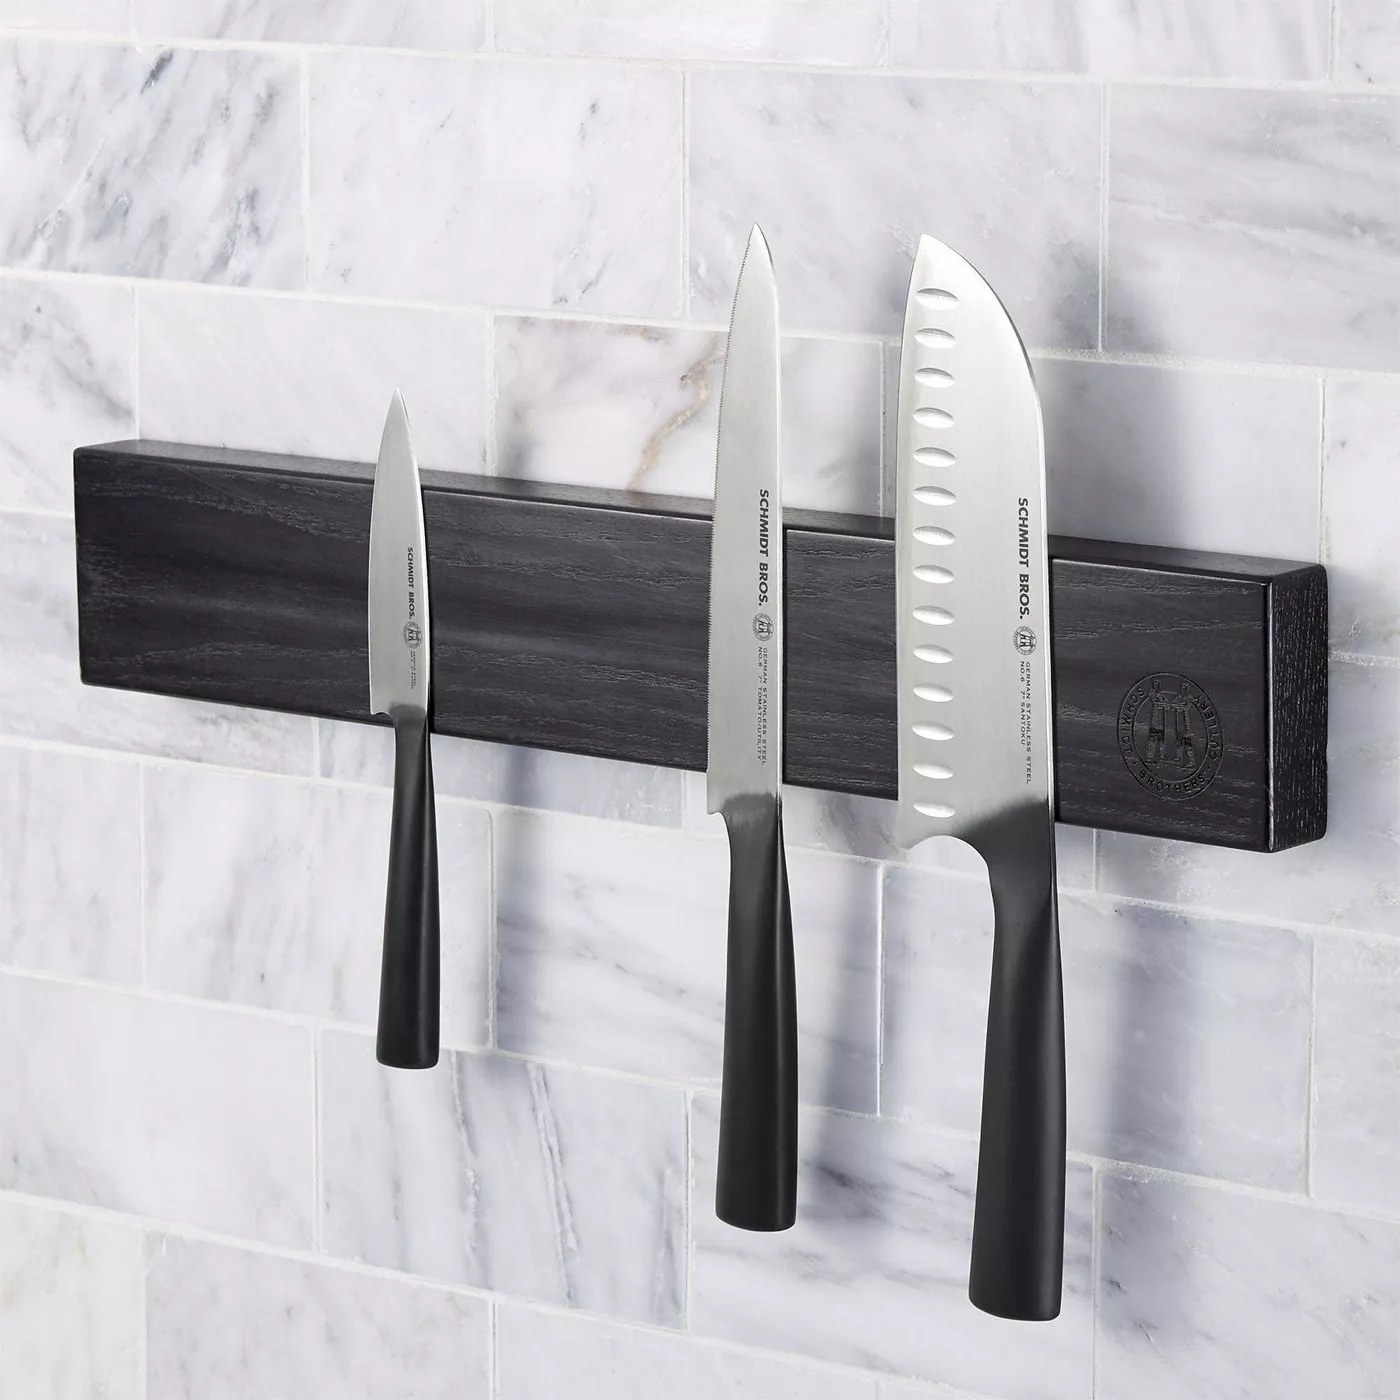 The wall bar with three knives on it